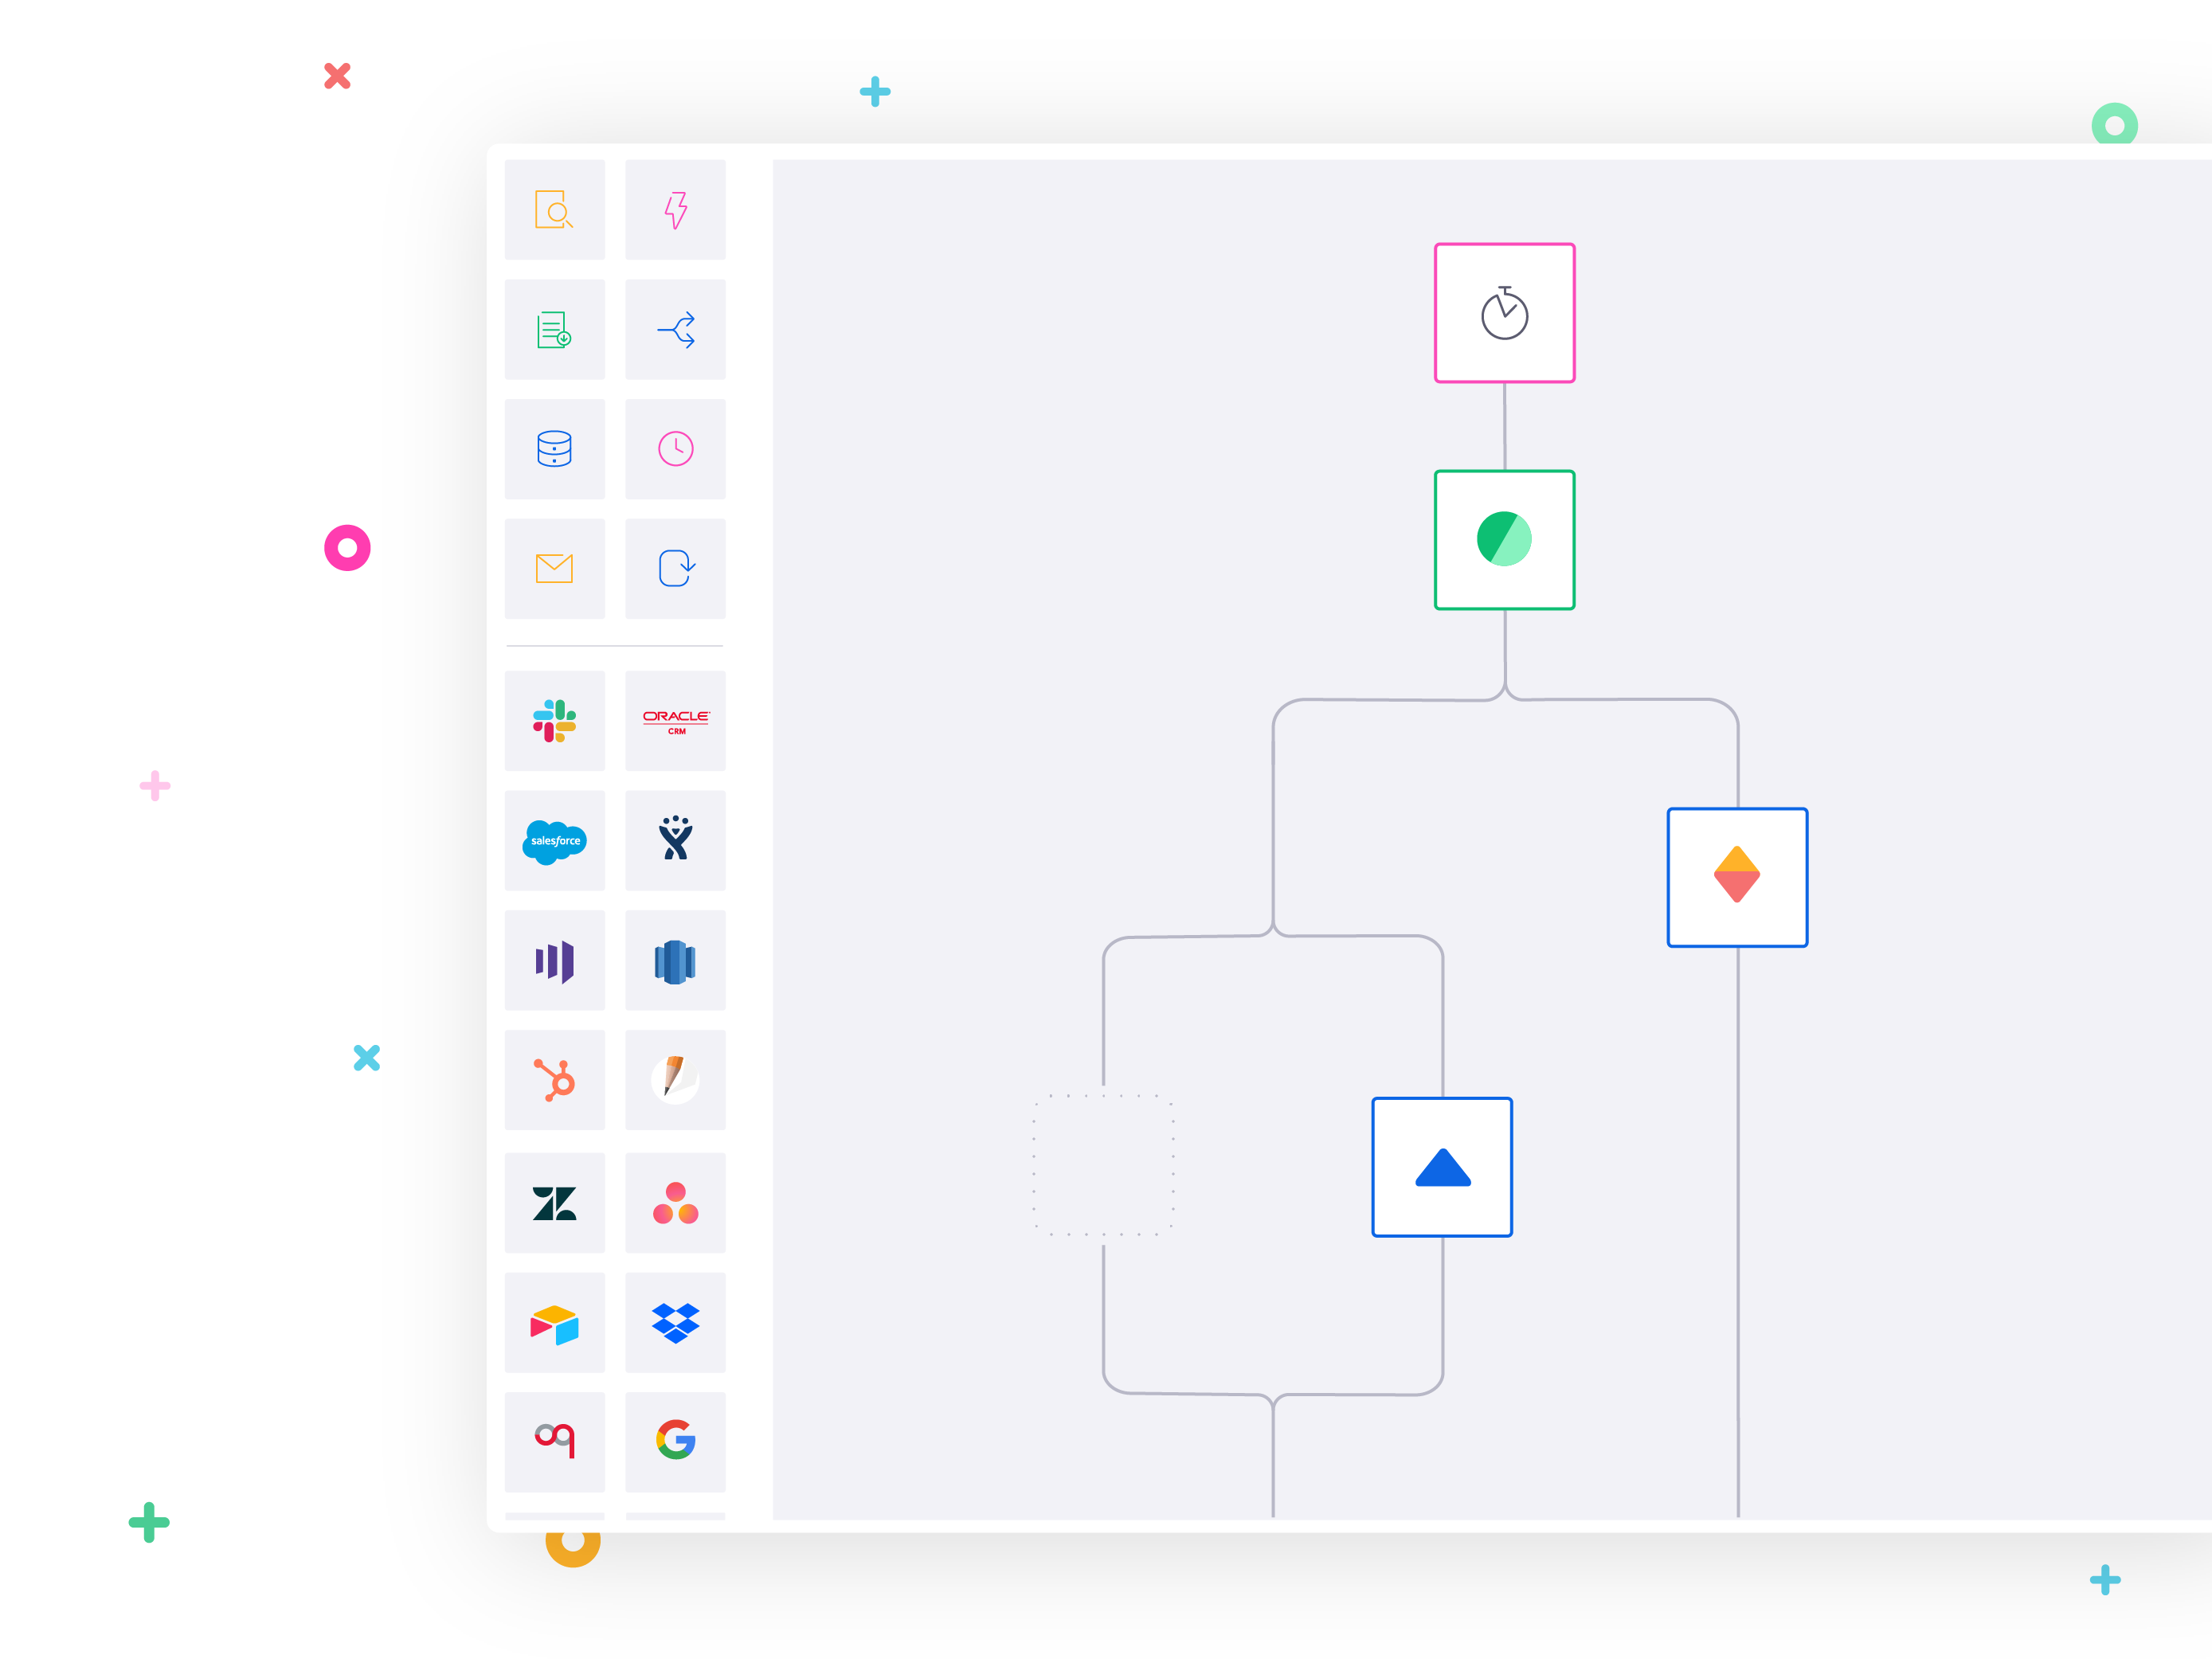 Open source software leader uses Tray.io to integrate Clearbit, Redshift, Salesforce, and Slack.